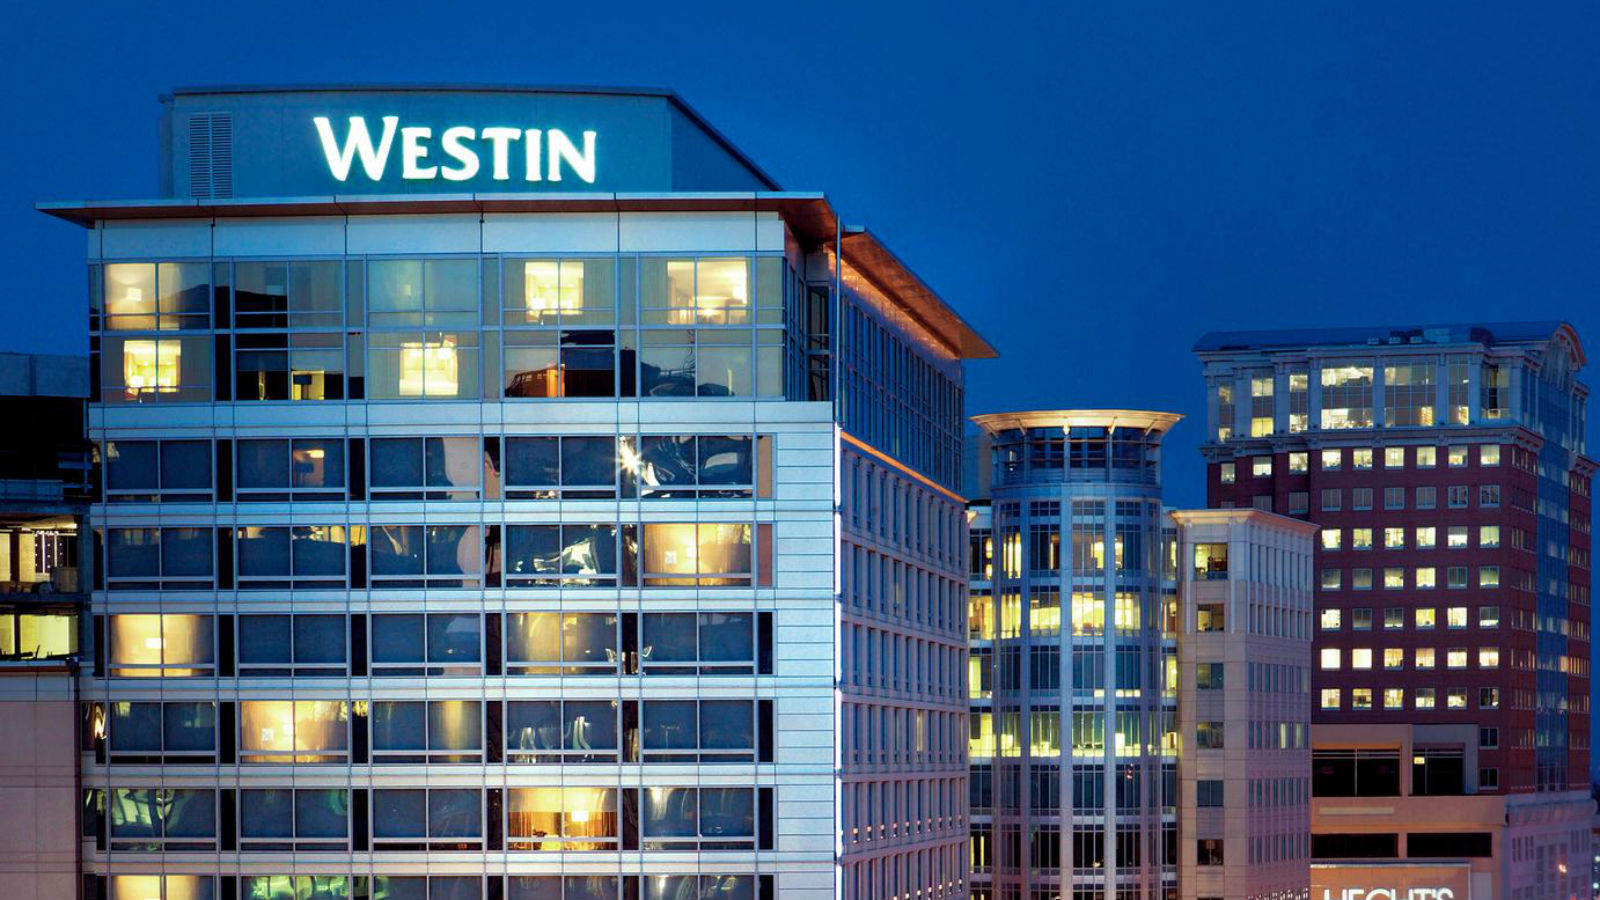 SPG Member Rewards | The Westin Arlington Gateway